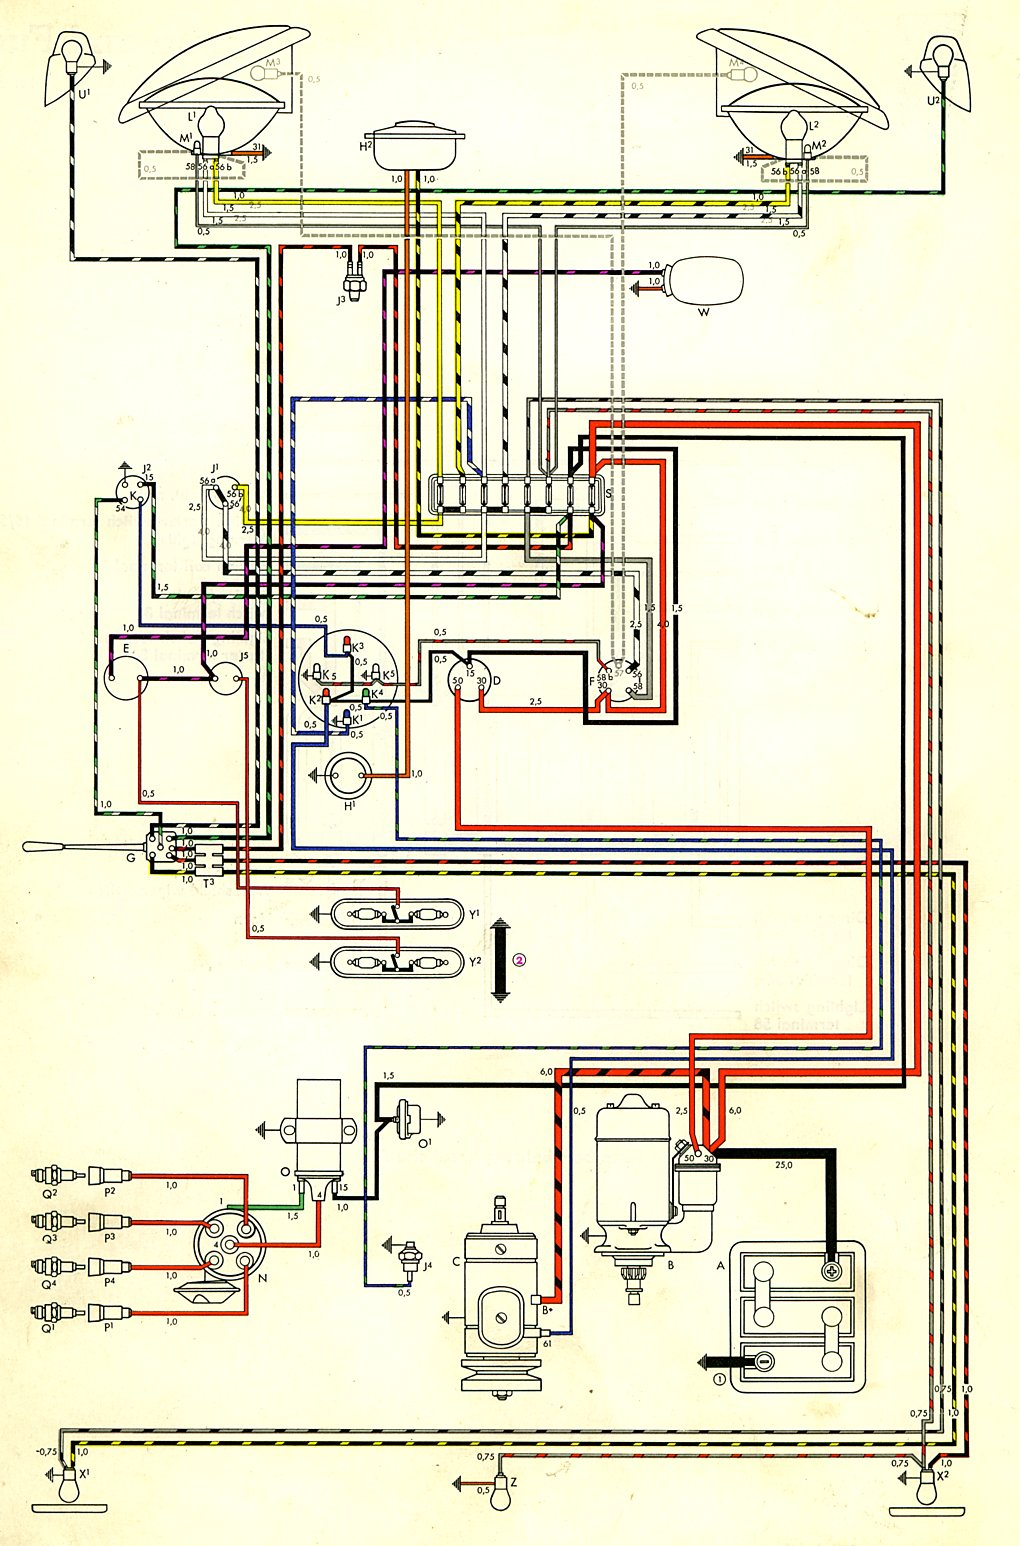 hight resolution of 78 vw bus engine diagram vw type 4 engine wiring diagram 67 vw bus wiring diagram